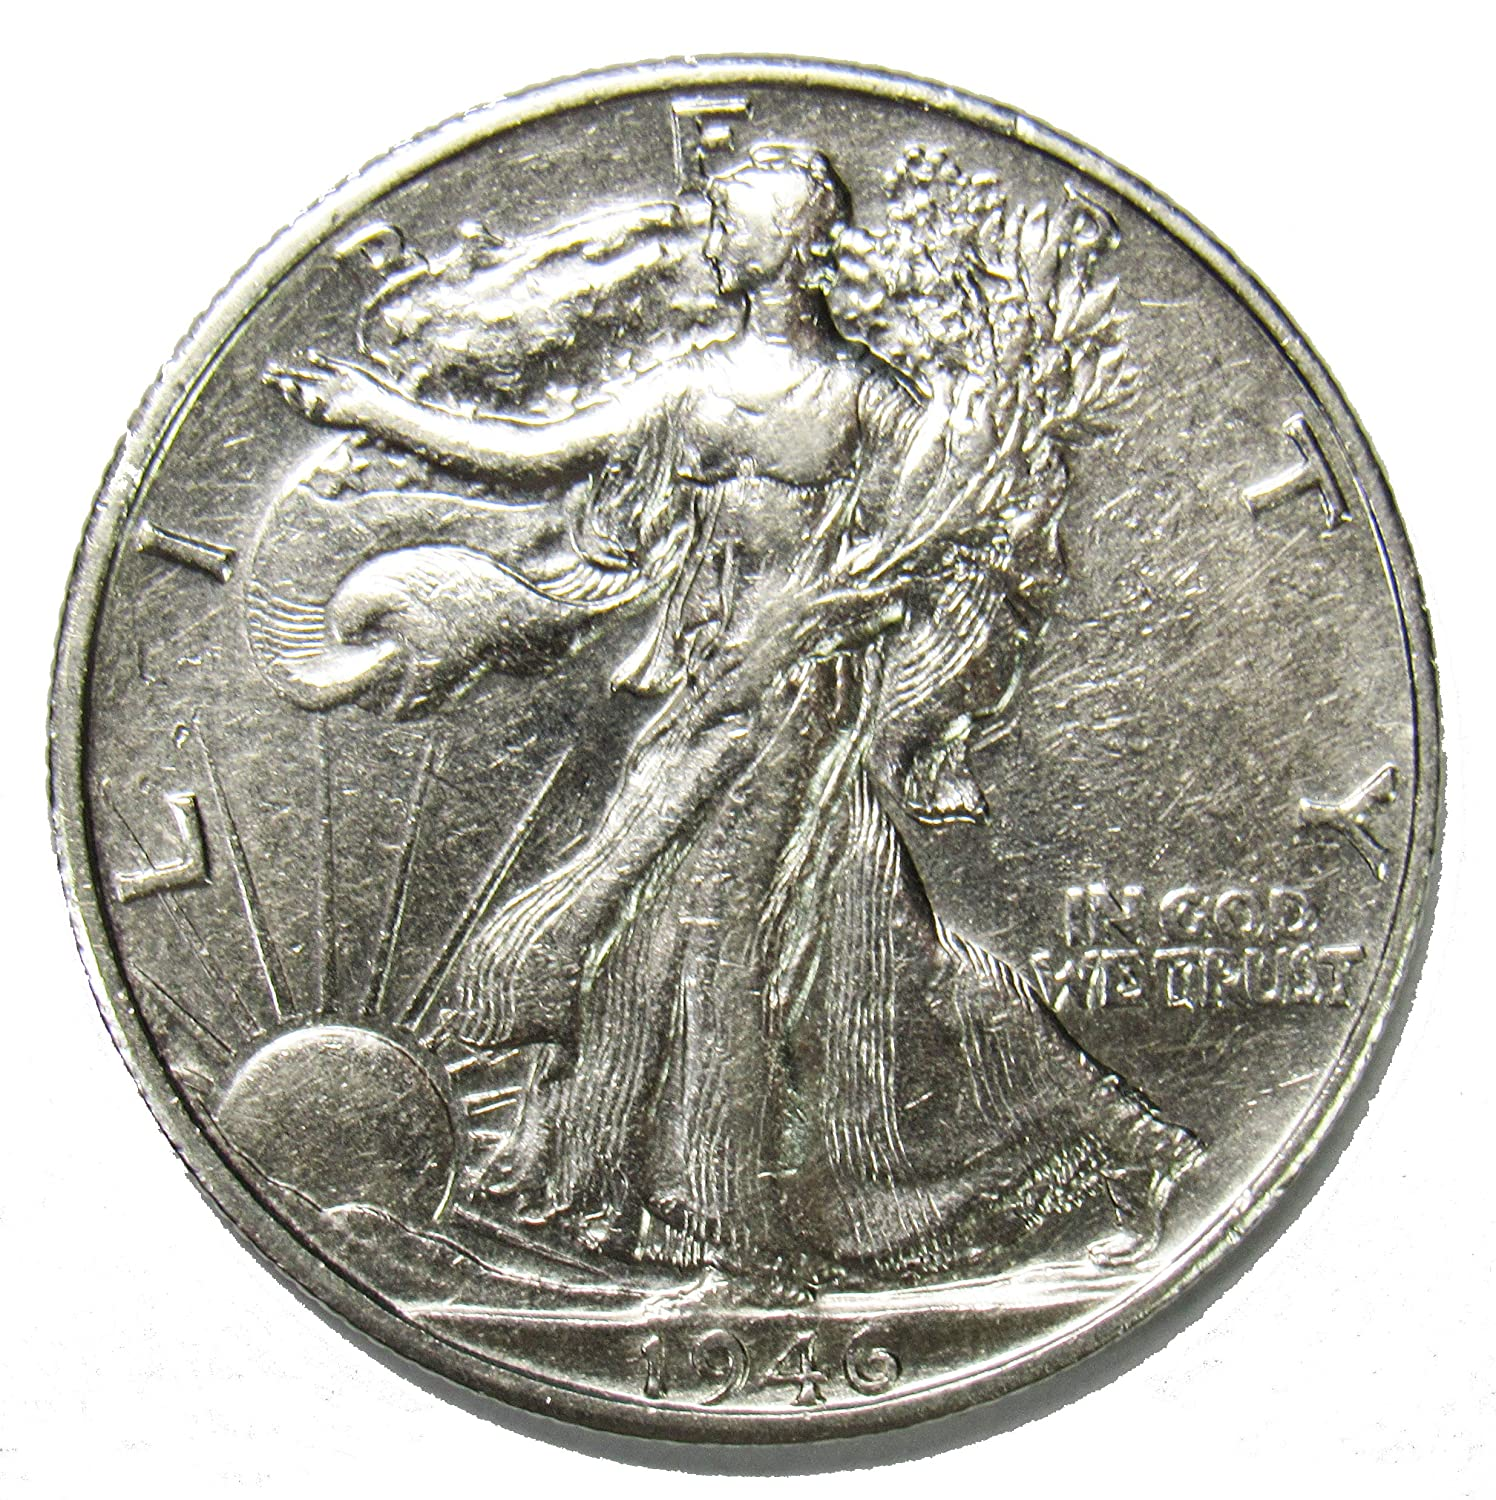 1943-d Walking Liberty Half Average Grade of Coin You Receive is Photographed